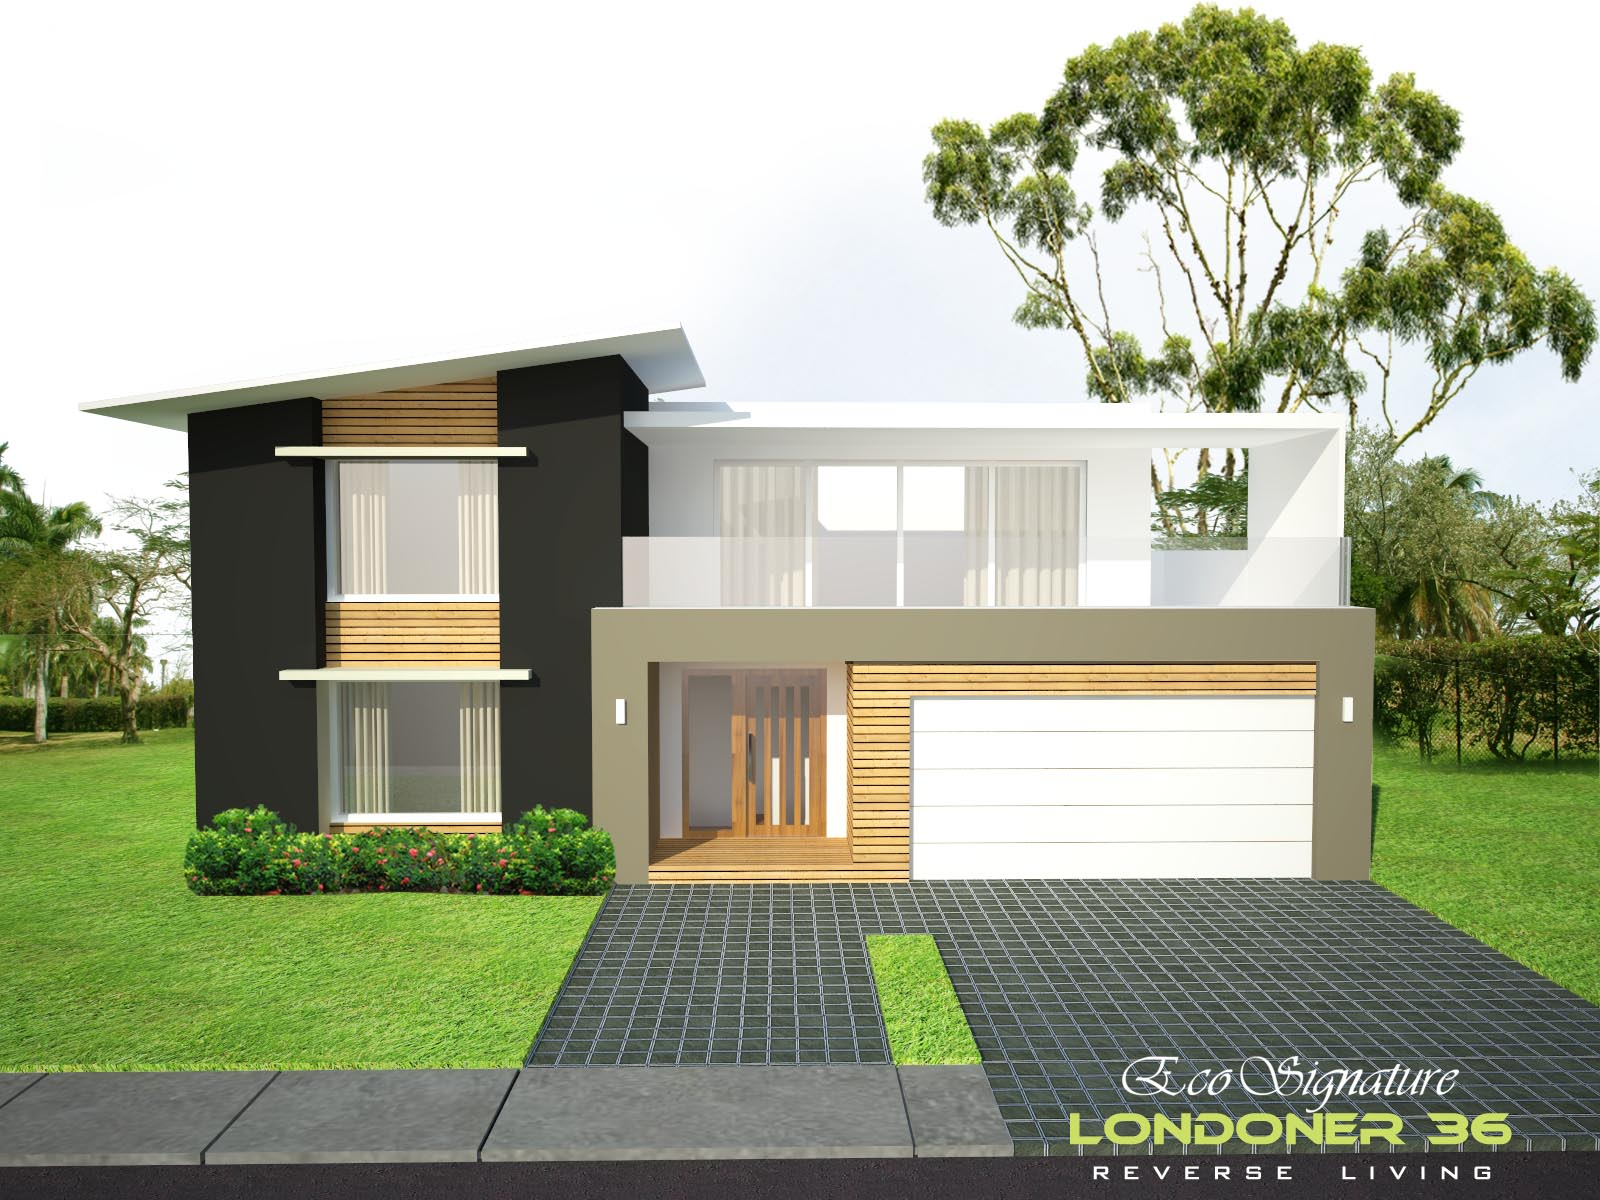 Londoner 37 eco signature reverse living for Pure home designs